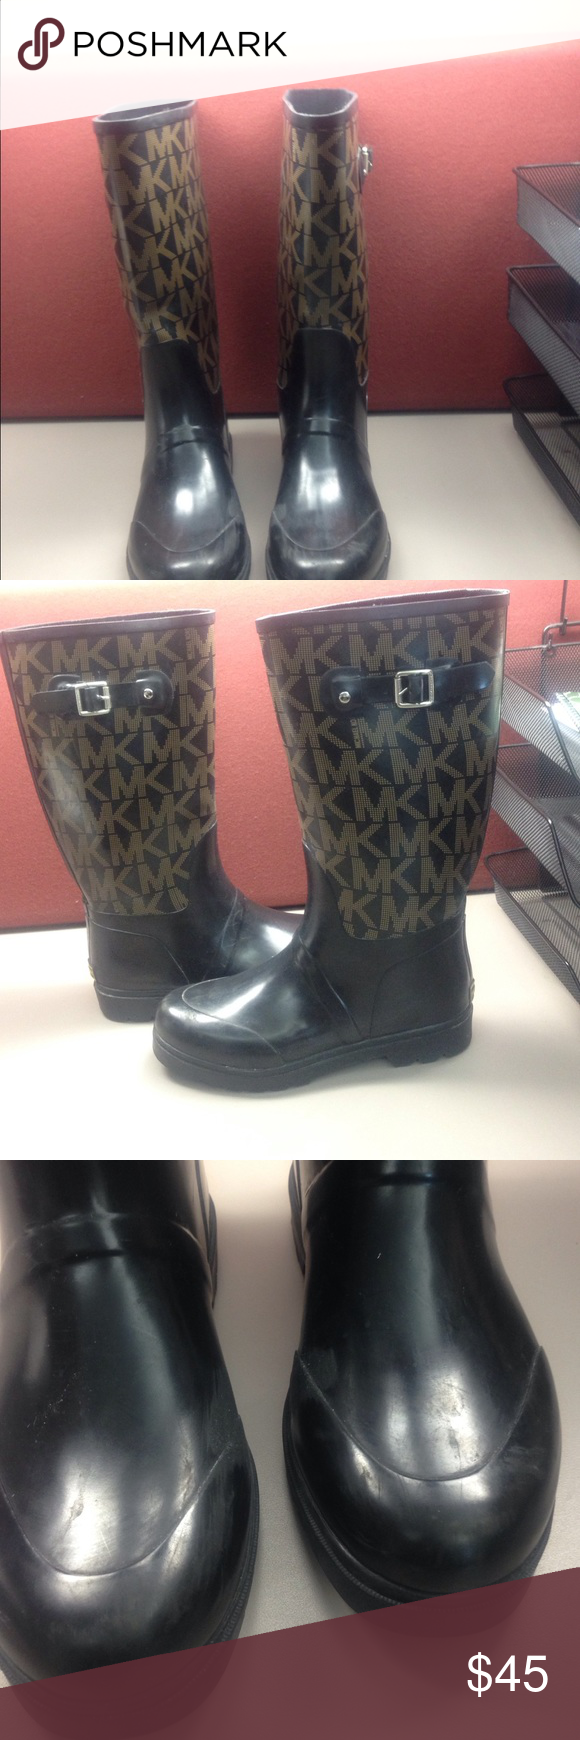 Authentic designer rain boots Monogrammed tan & black rubber knee high boots. Buckle on outer side. Scuffs on vamp. Minor slit on seam of right boot but no through felt lining.  Easy rubber fix Very cute. Michael Kors Shoes Winter & Rain Boots